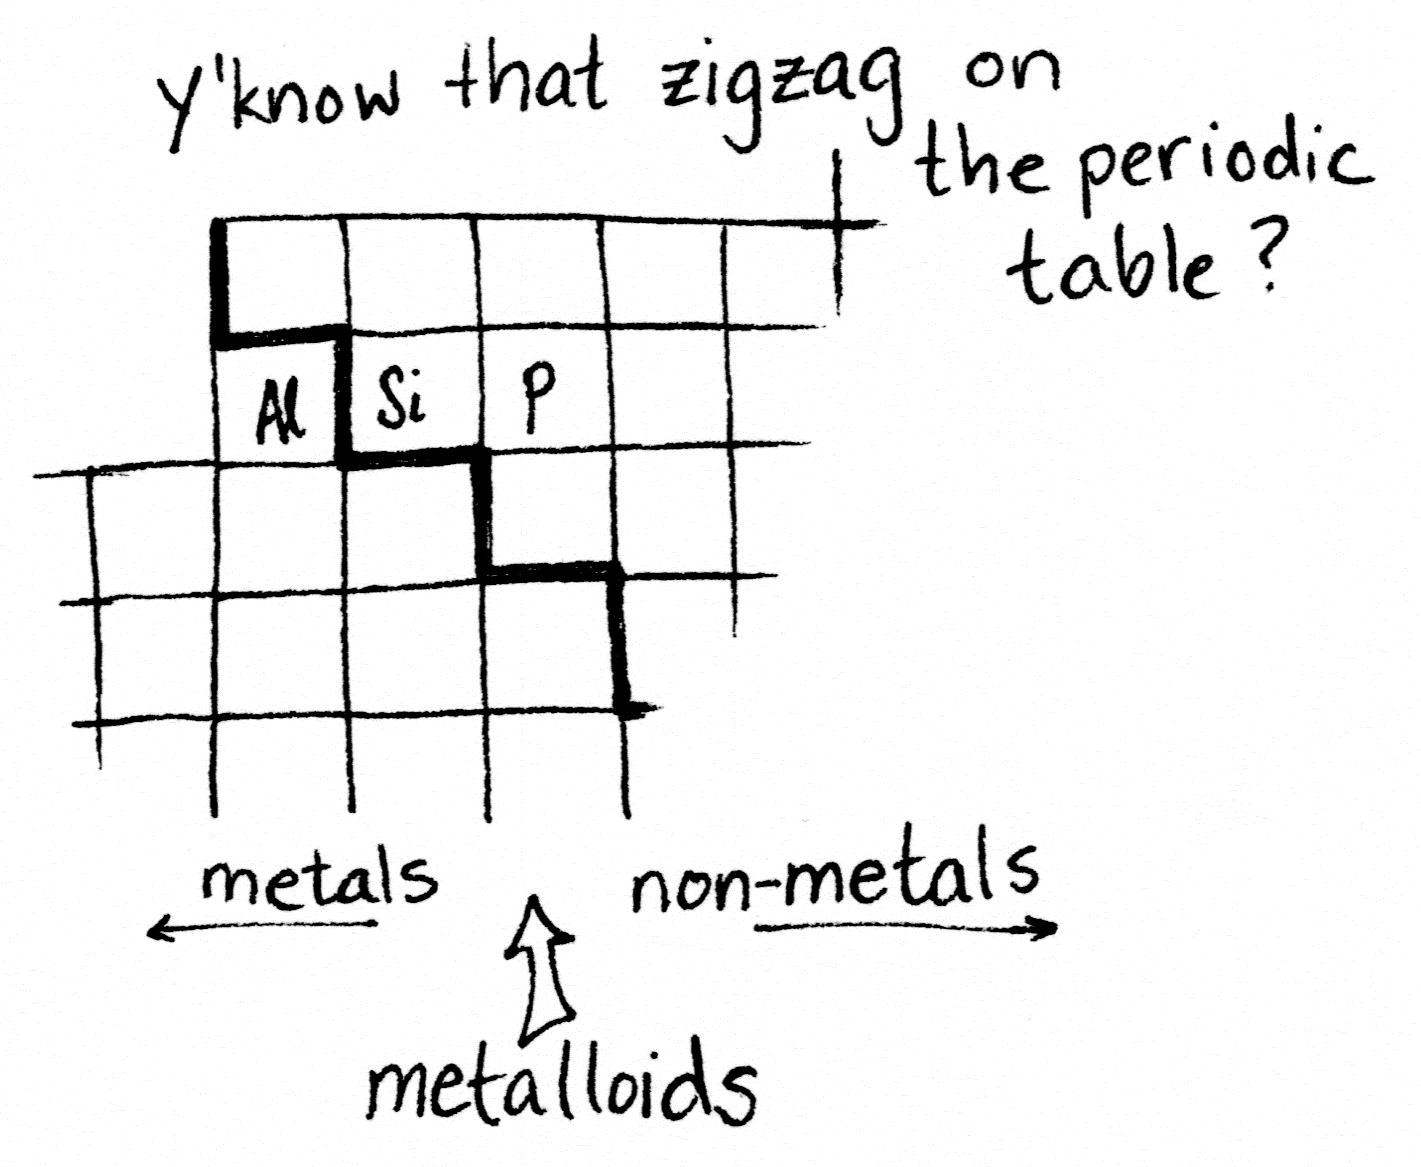 The zigzag divider drawn on the periodic table separates metals to the left, non-metals to the right, and inbetweener metalloids right along the zigzag.